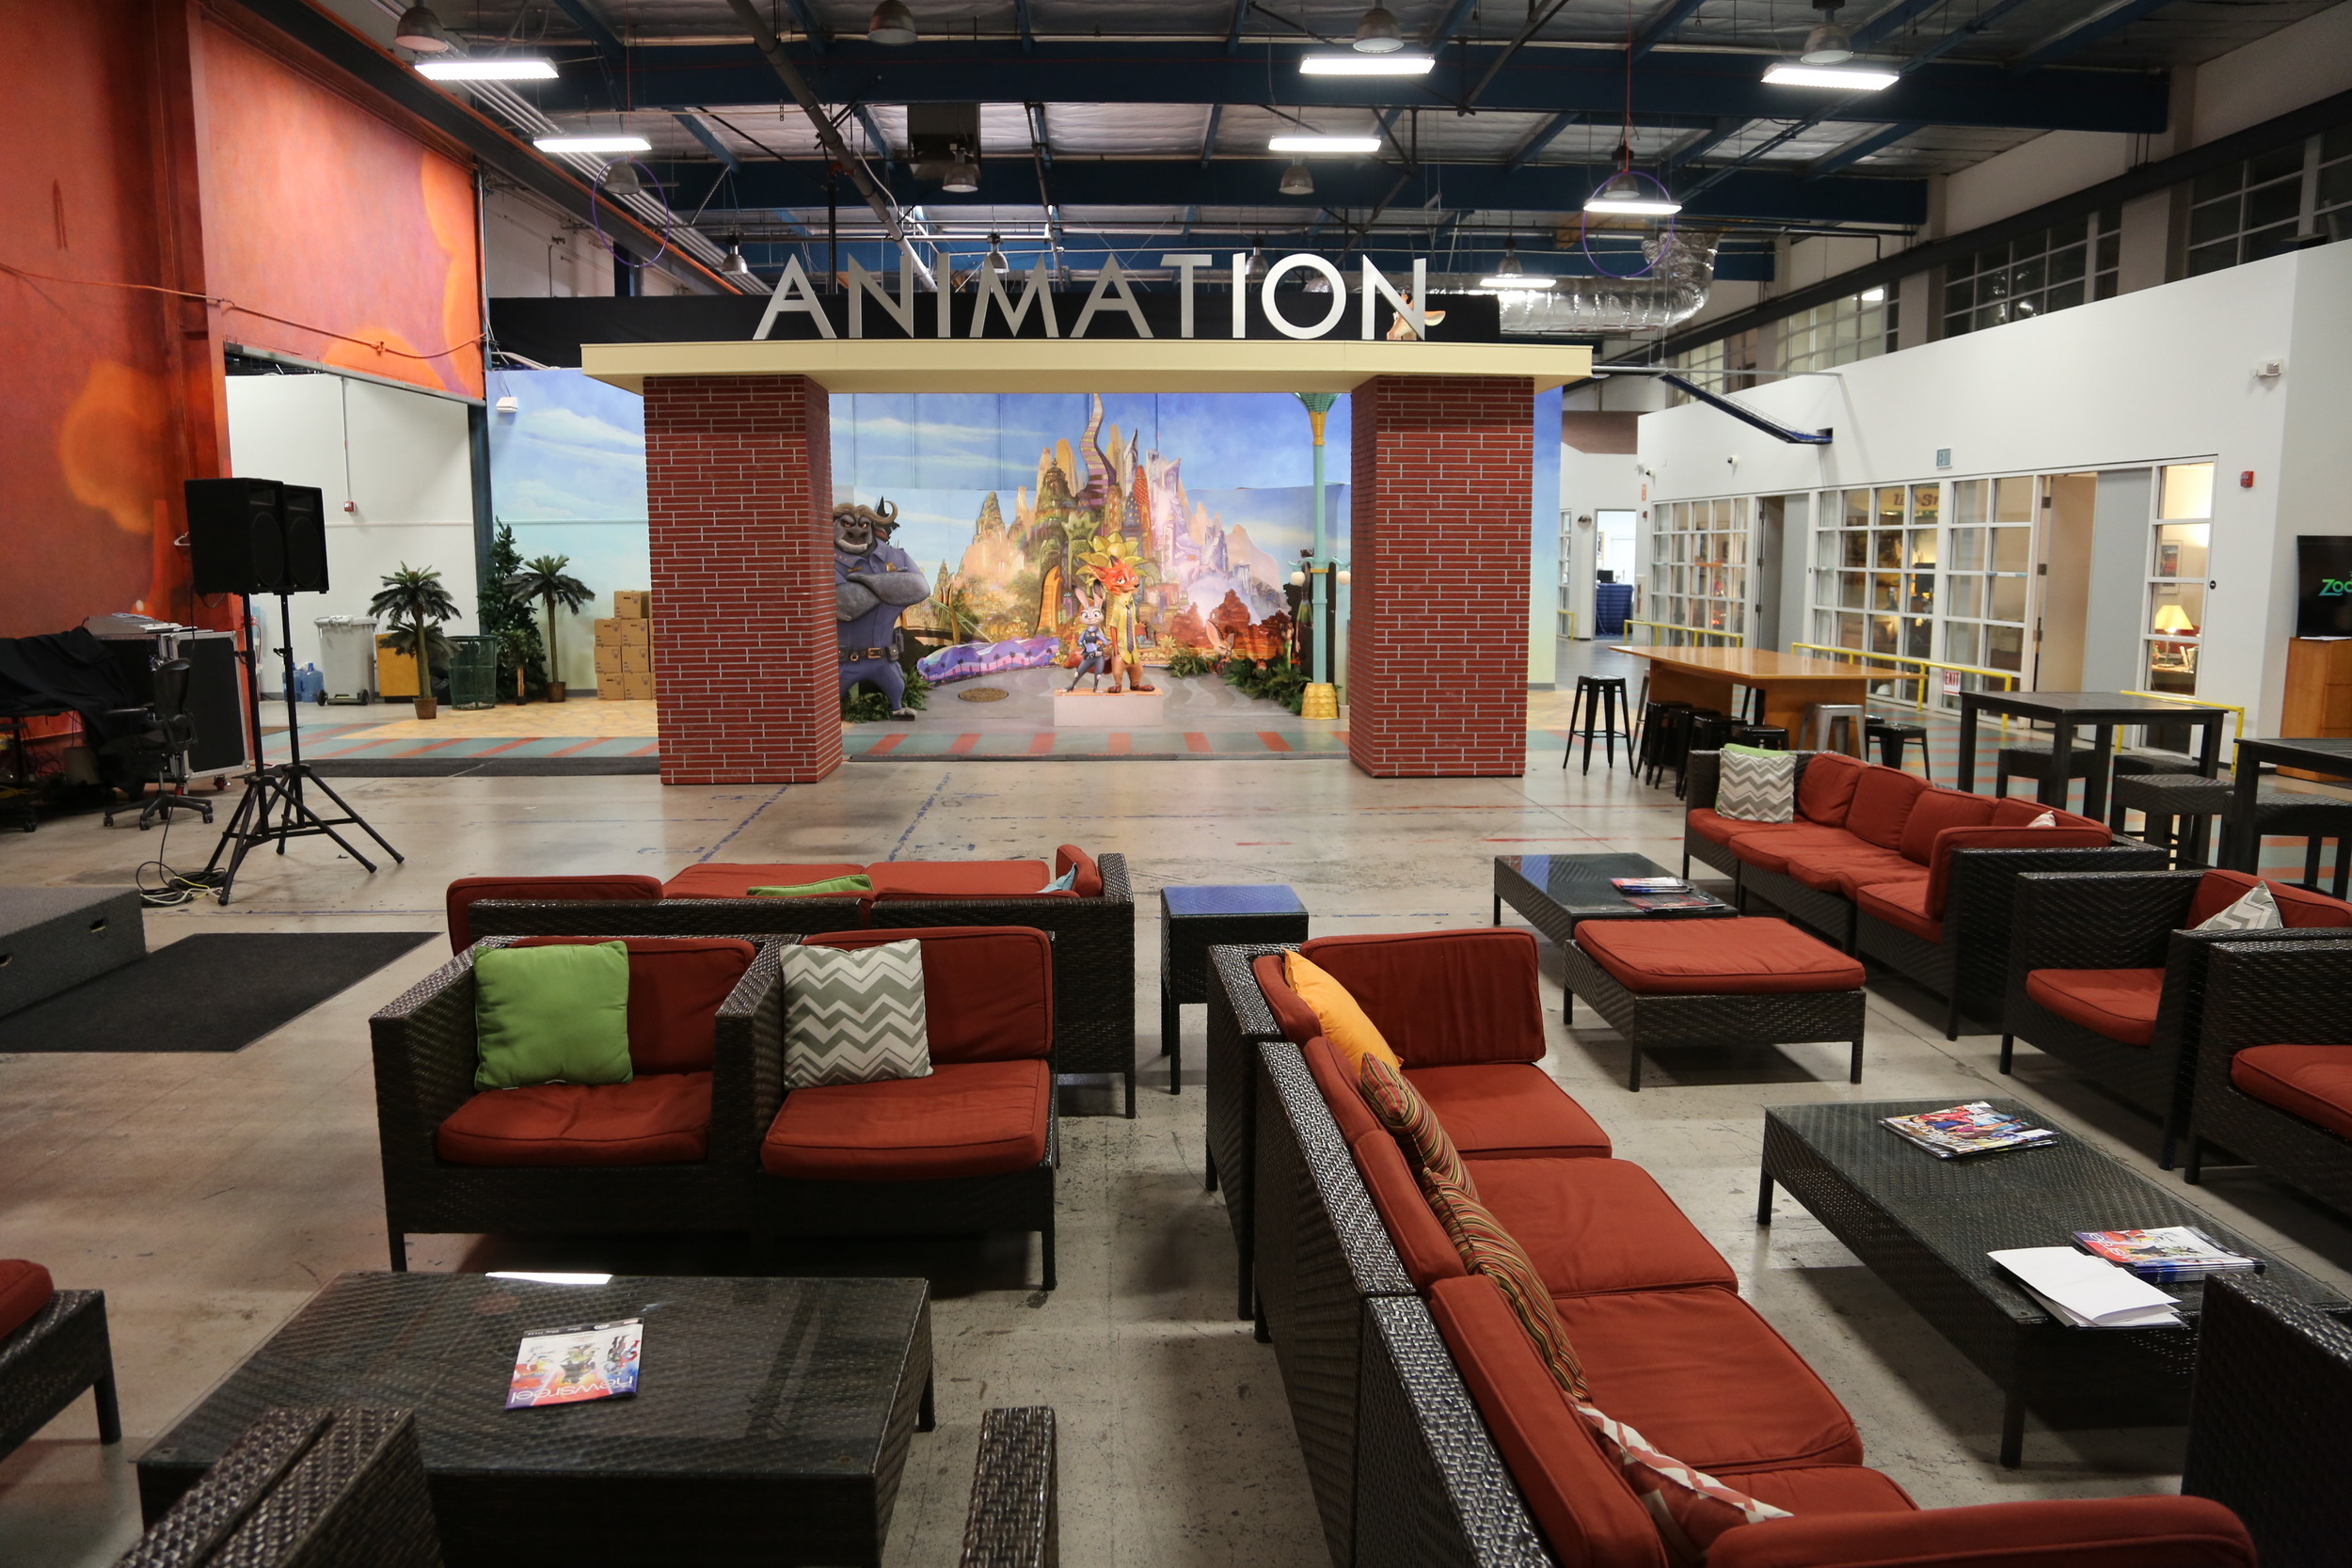 Temporary Animation Studios Space - Tujunga Campus. Photo courtesy of Disney